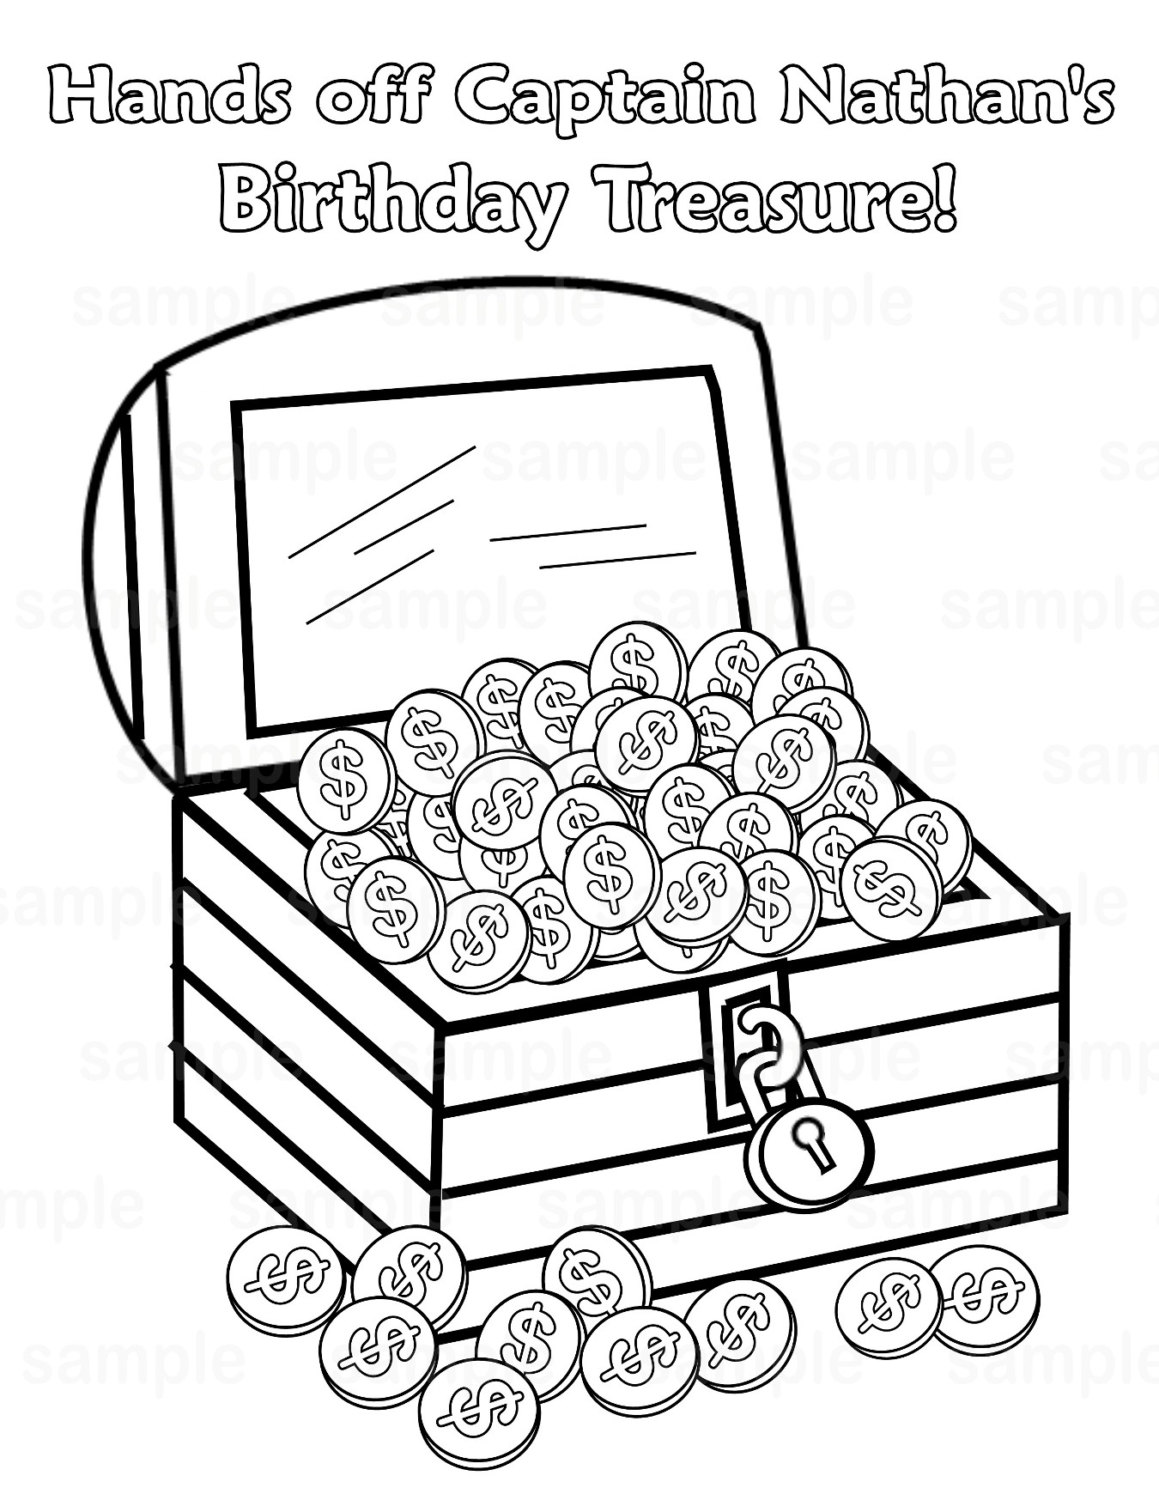 pirate treasure chest coloring pages - photo#16